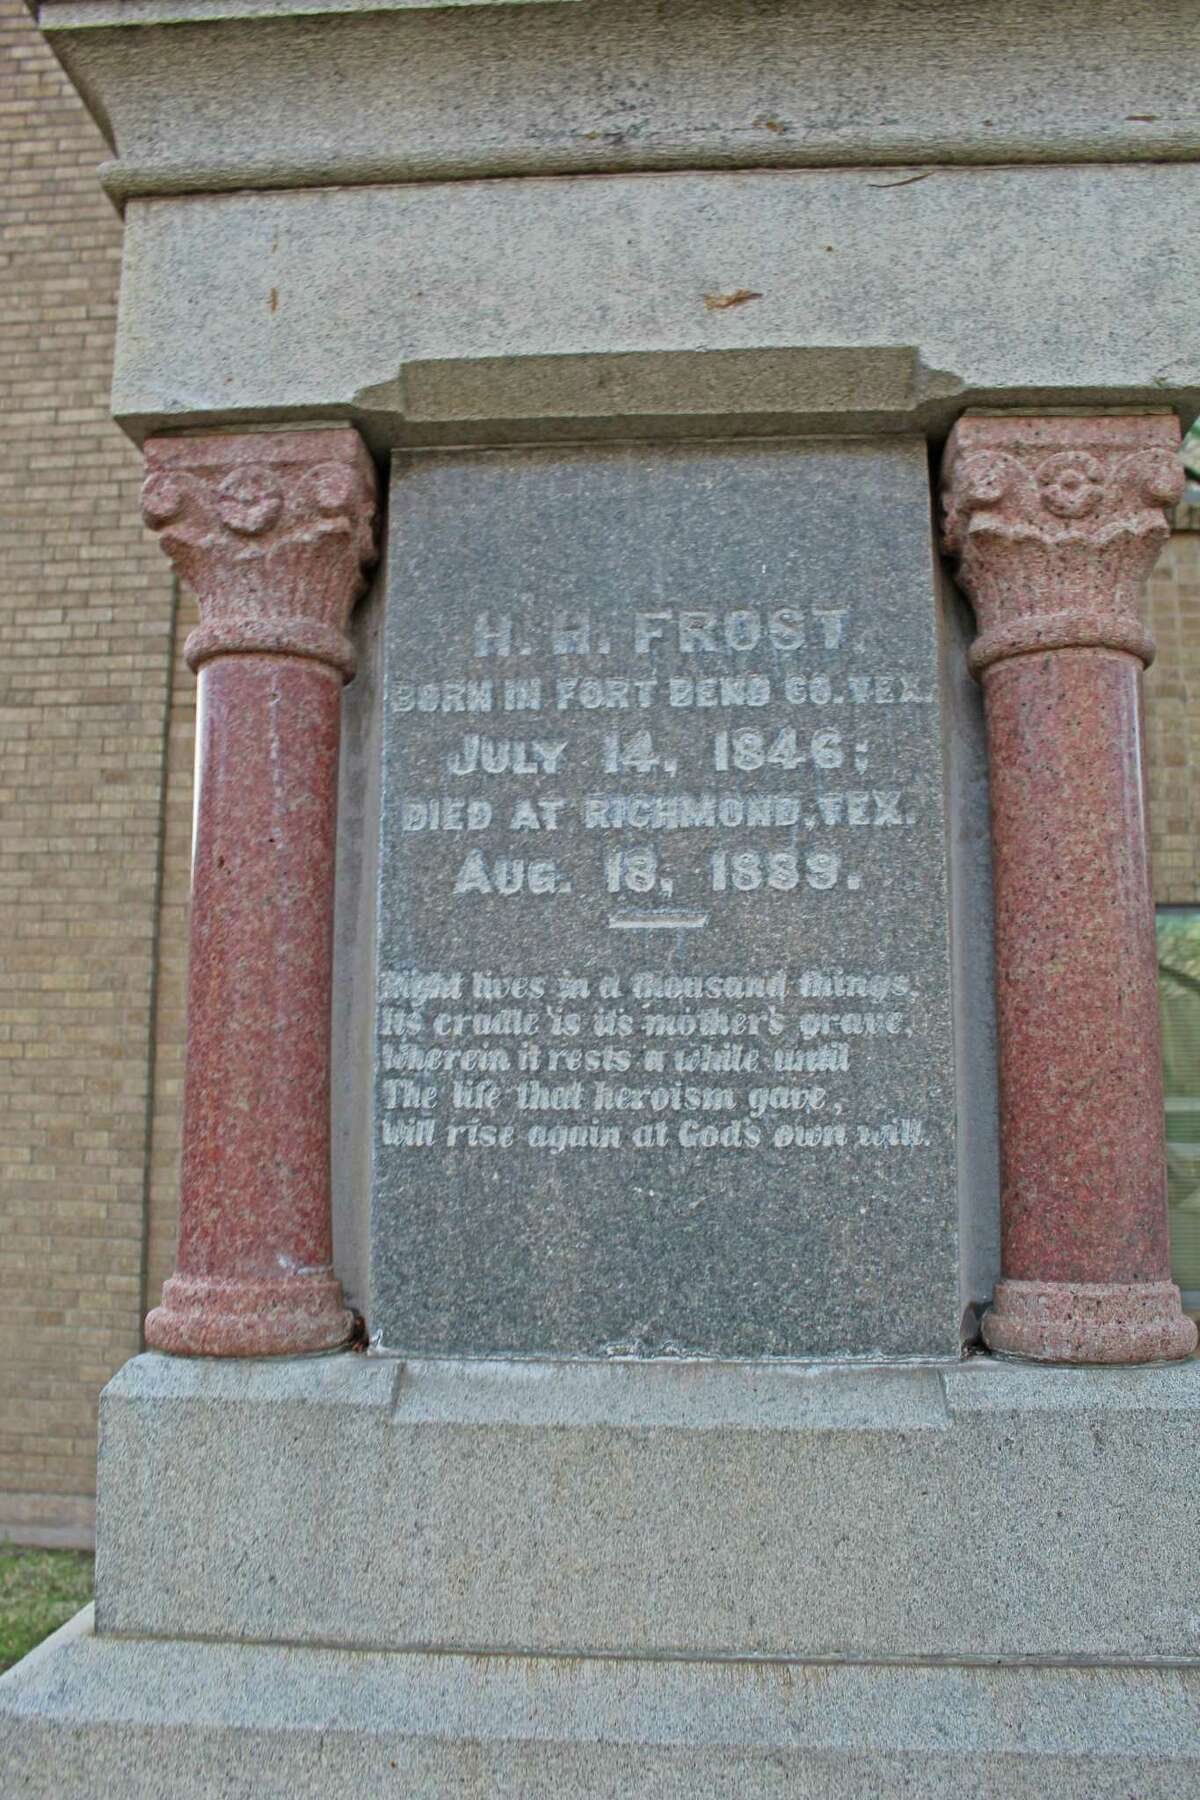 Inscription on one side of the Jaybird Monument in Richmond